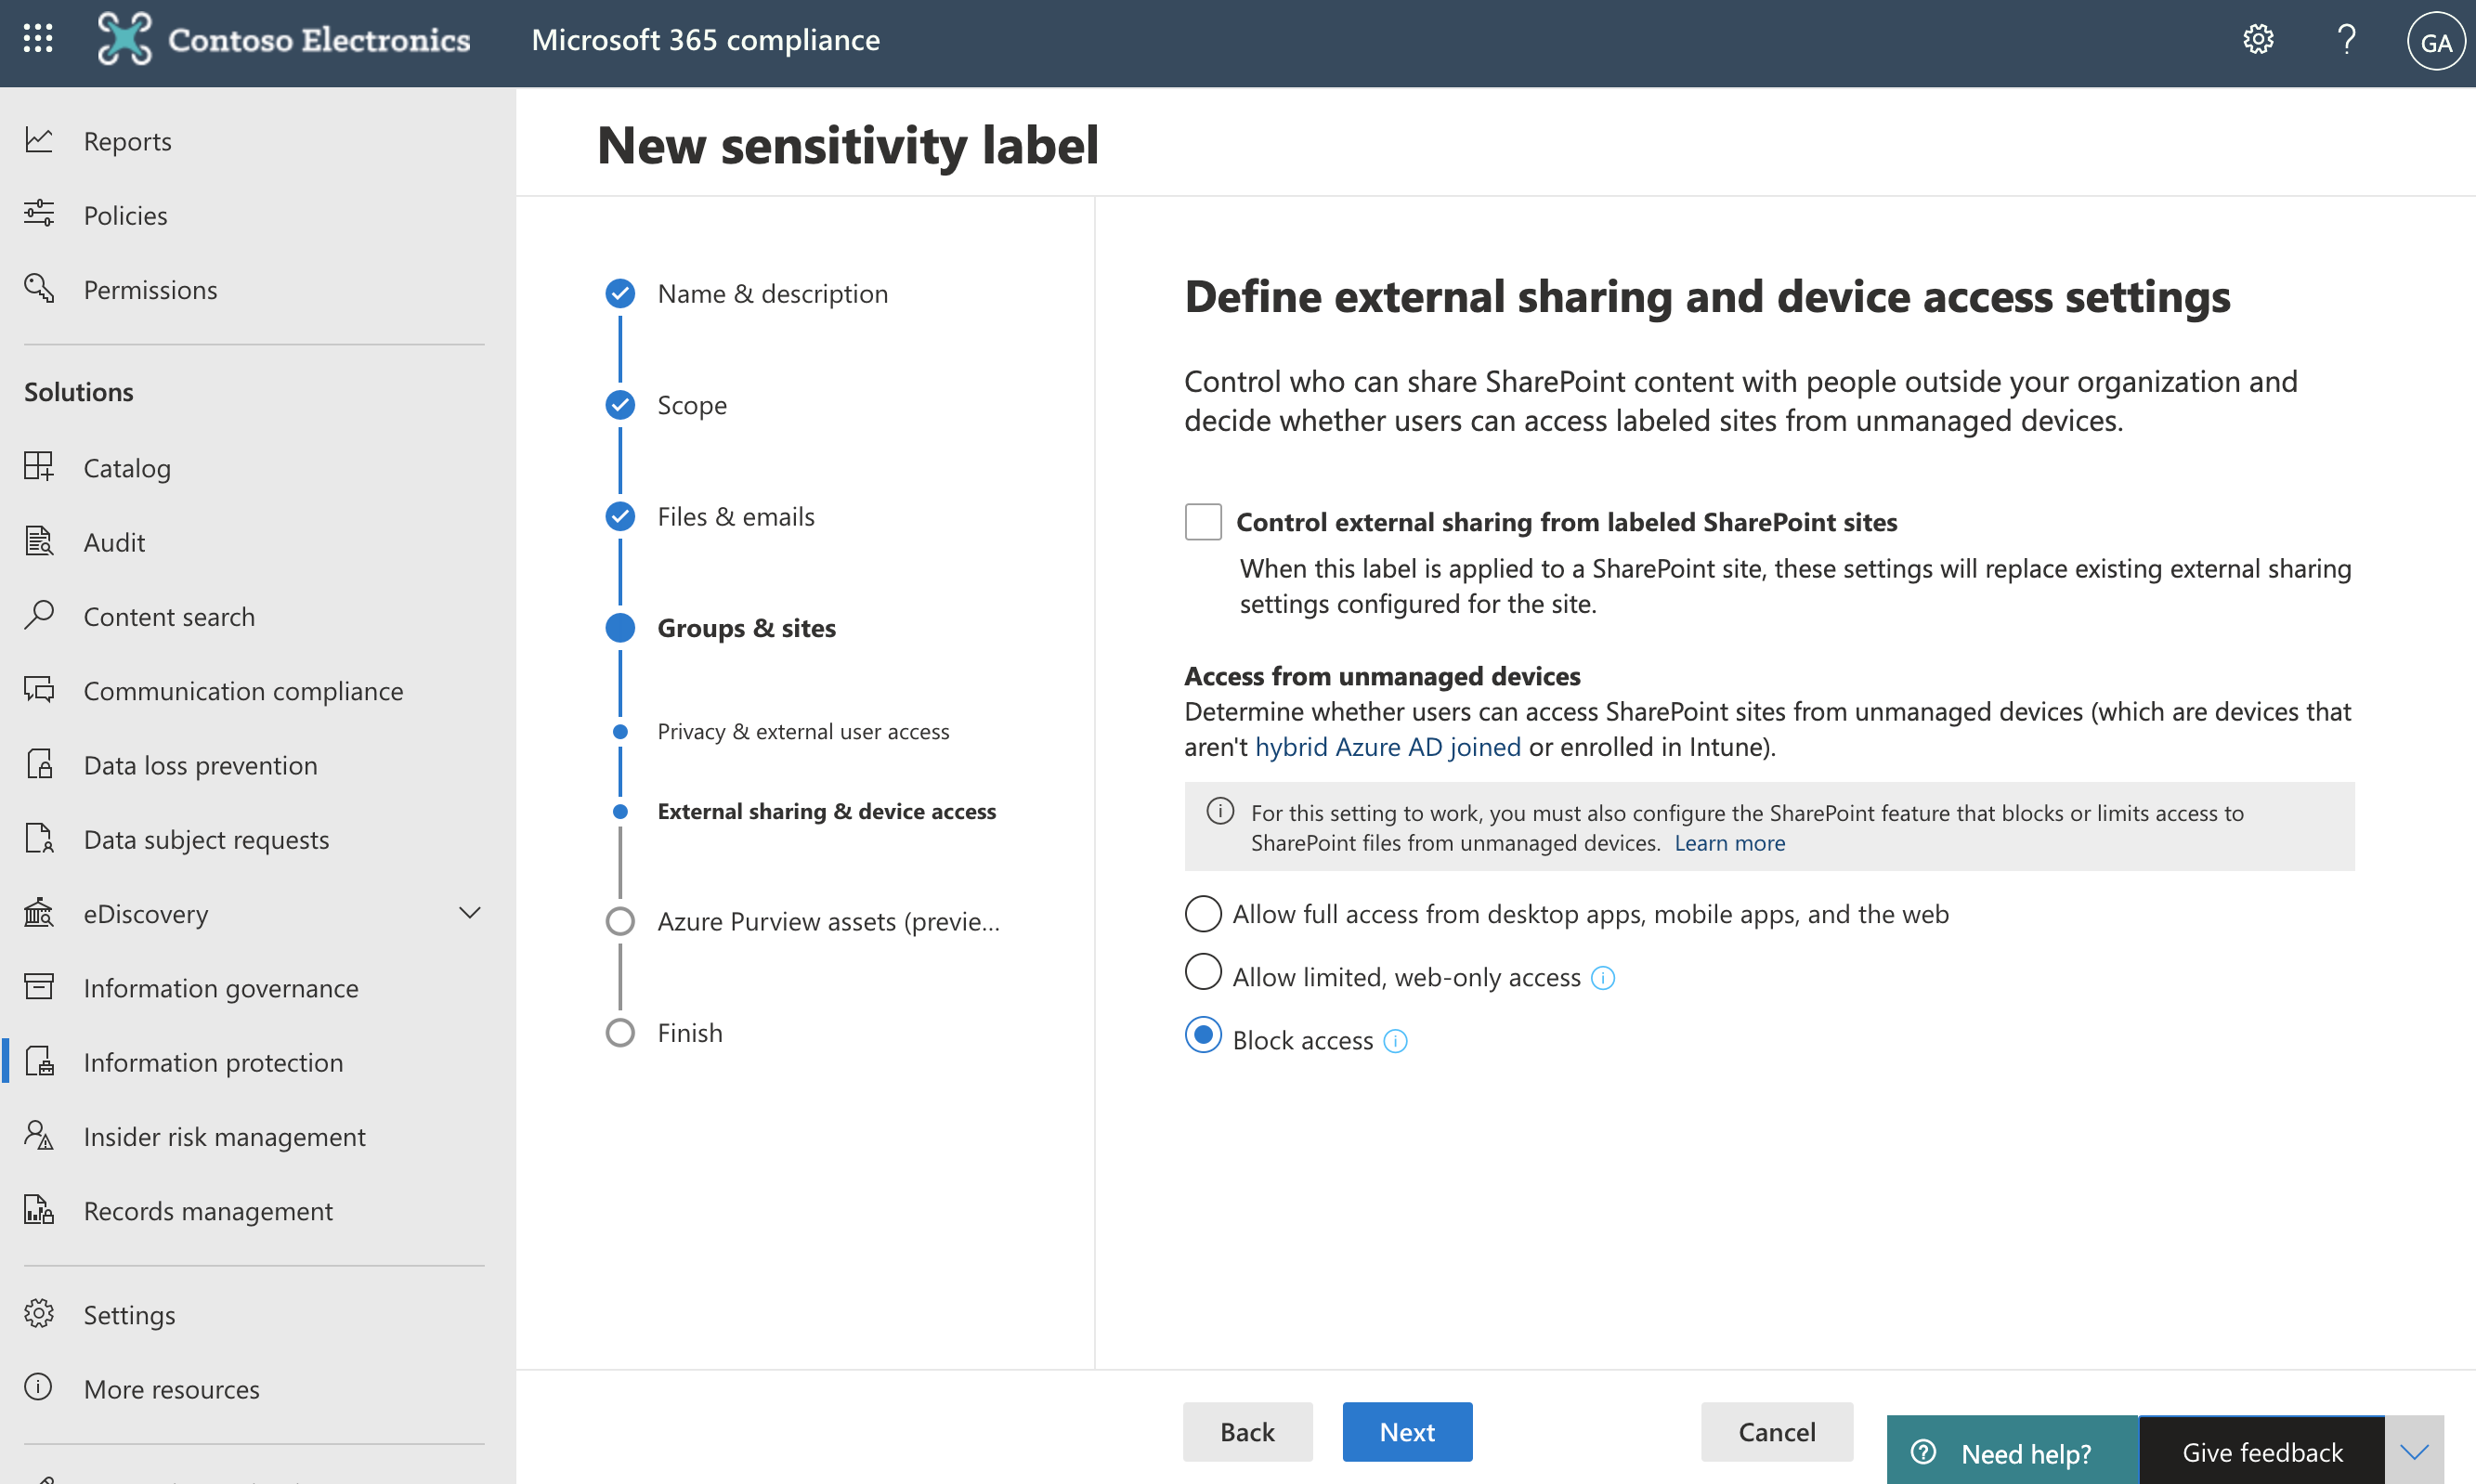 Screenshot of Define external sharing and device access settings page.